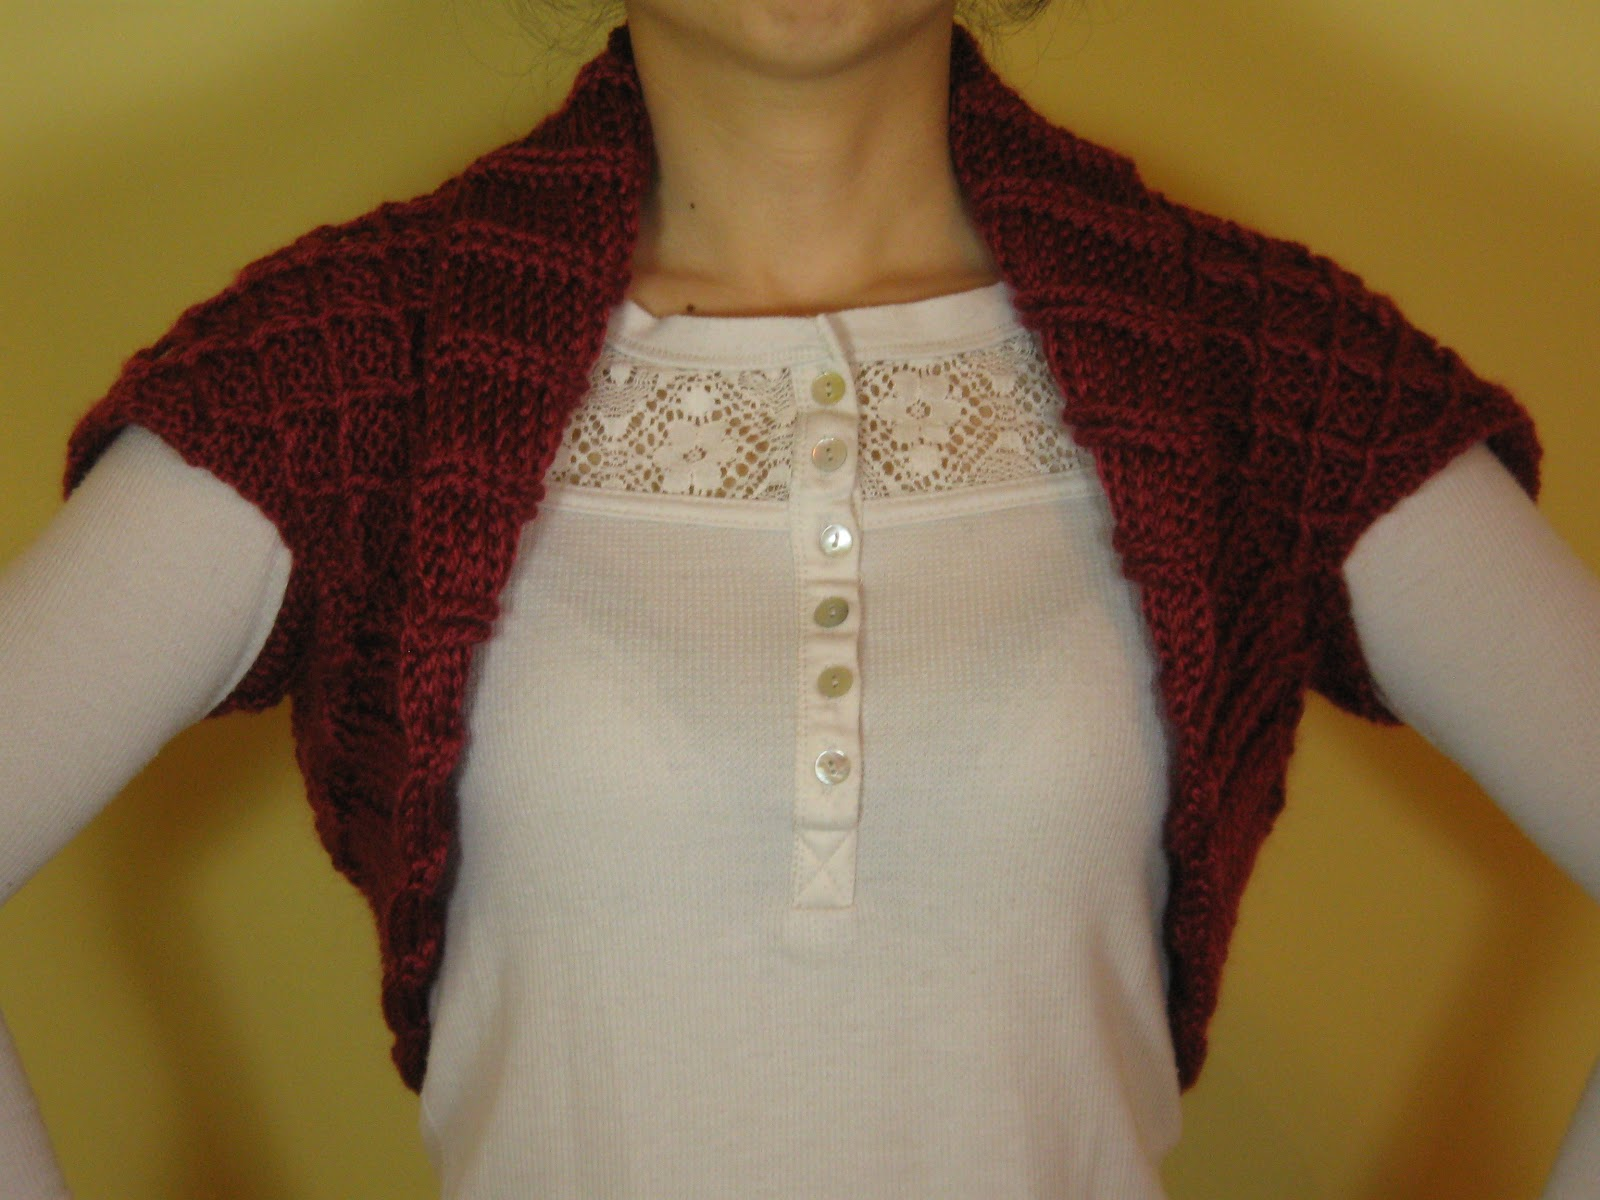 Crochet Machine: Short sleeve bolero